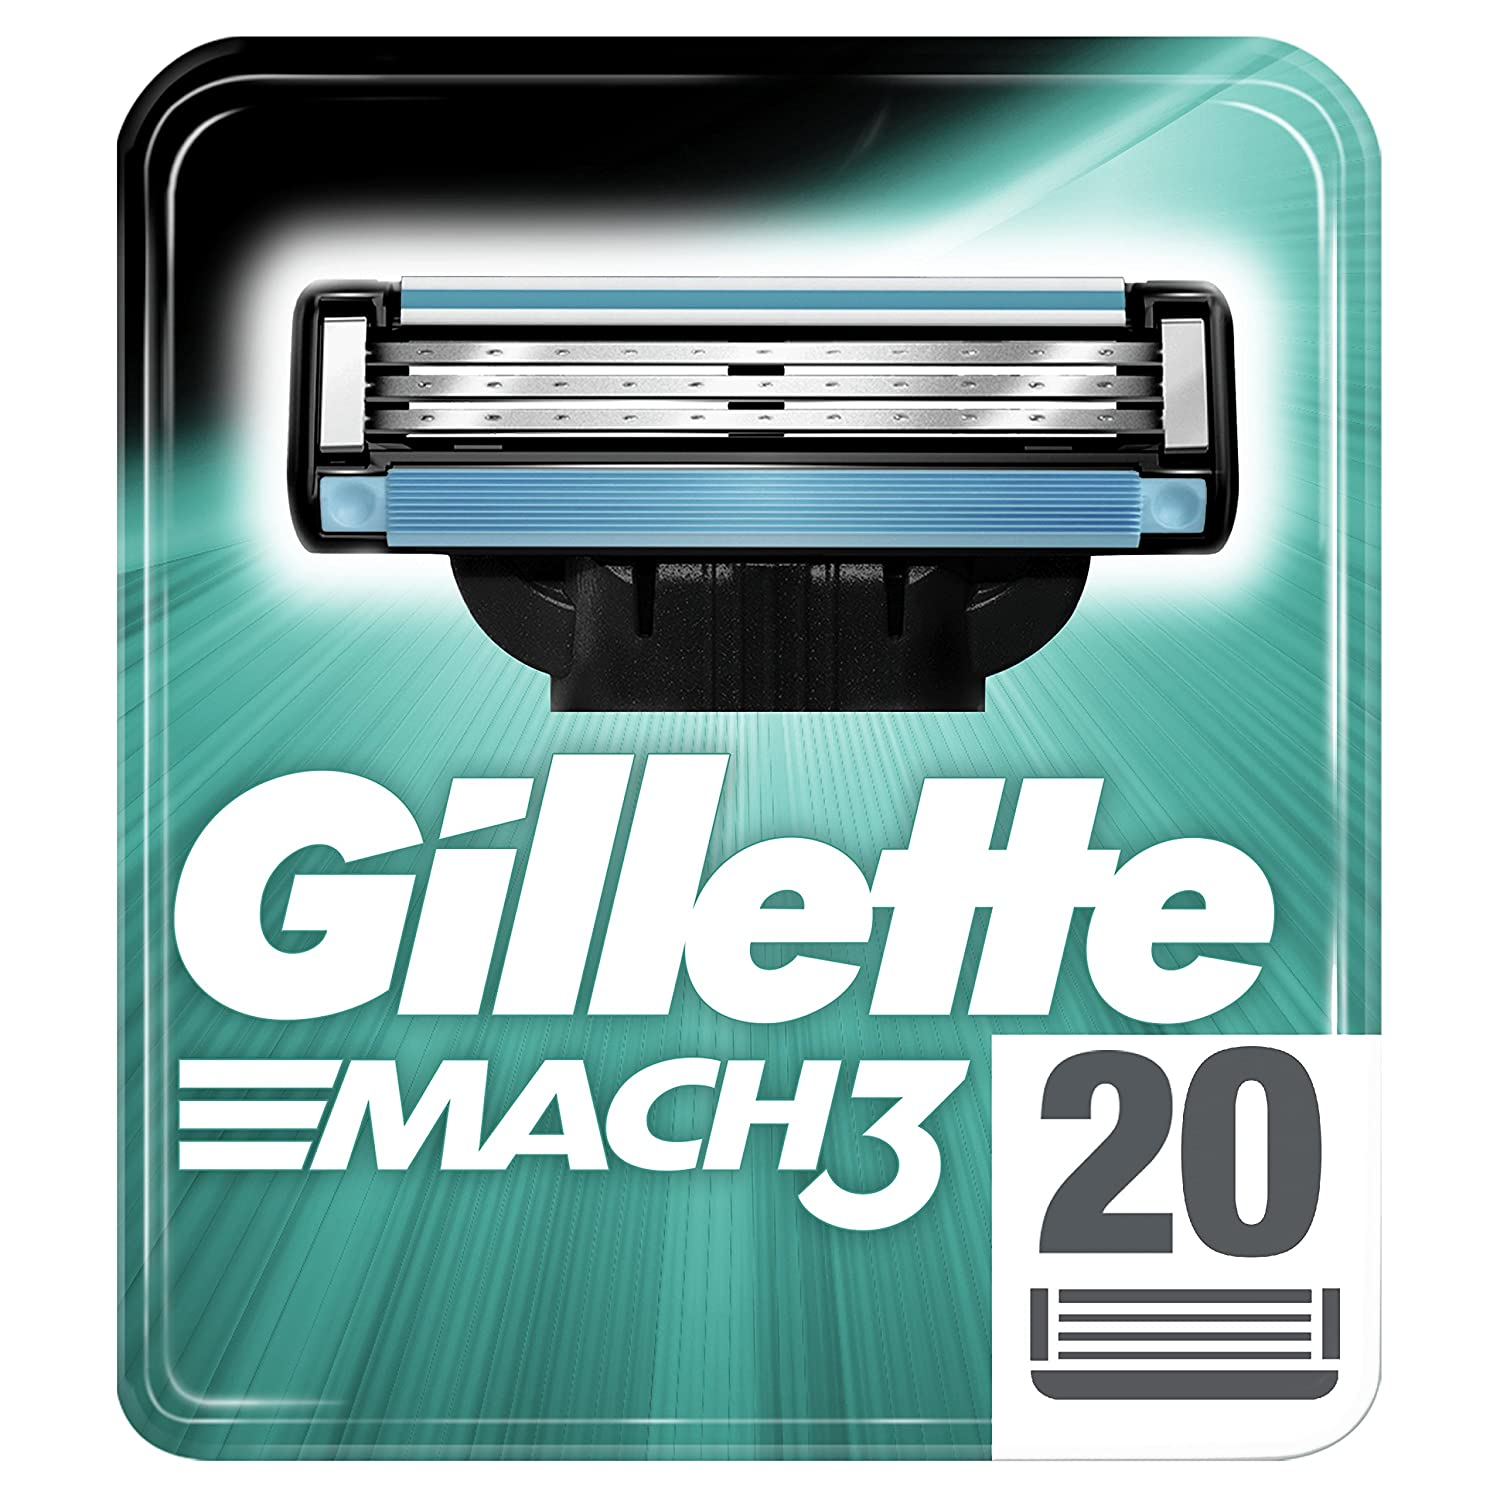 Gillette Mach3 Razor Blades for Men with Stronger-Than-Steel Blades, 8 Refills (Packaging May Vary) 2541274